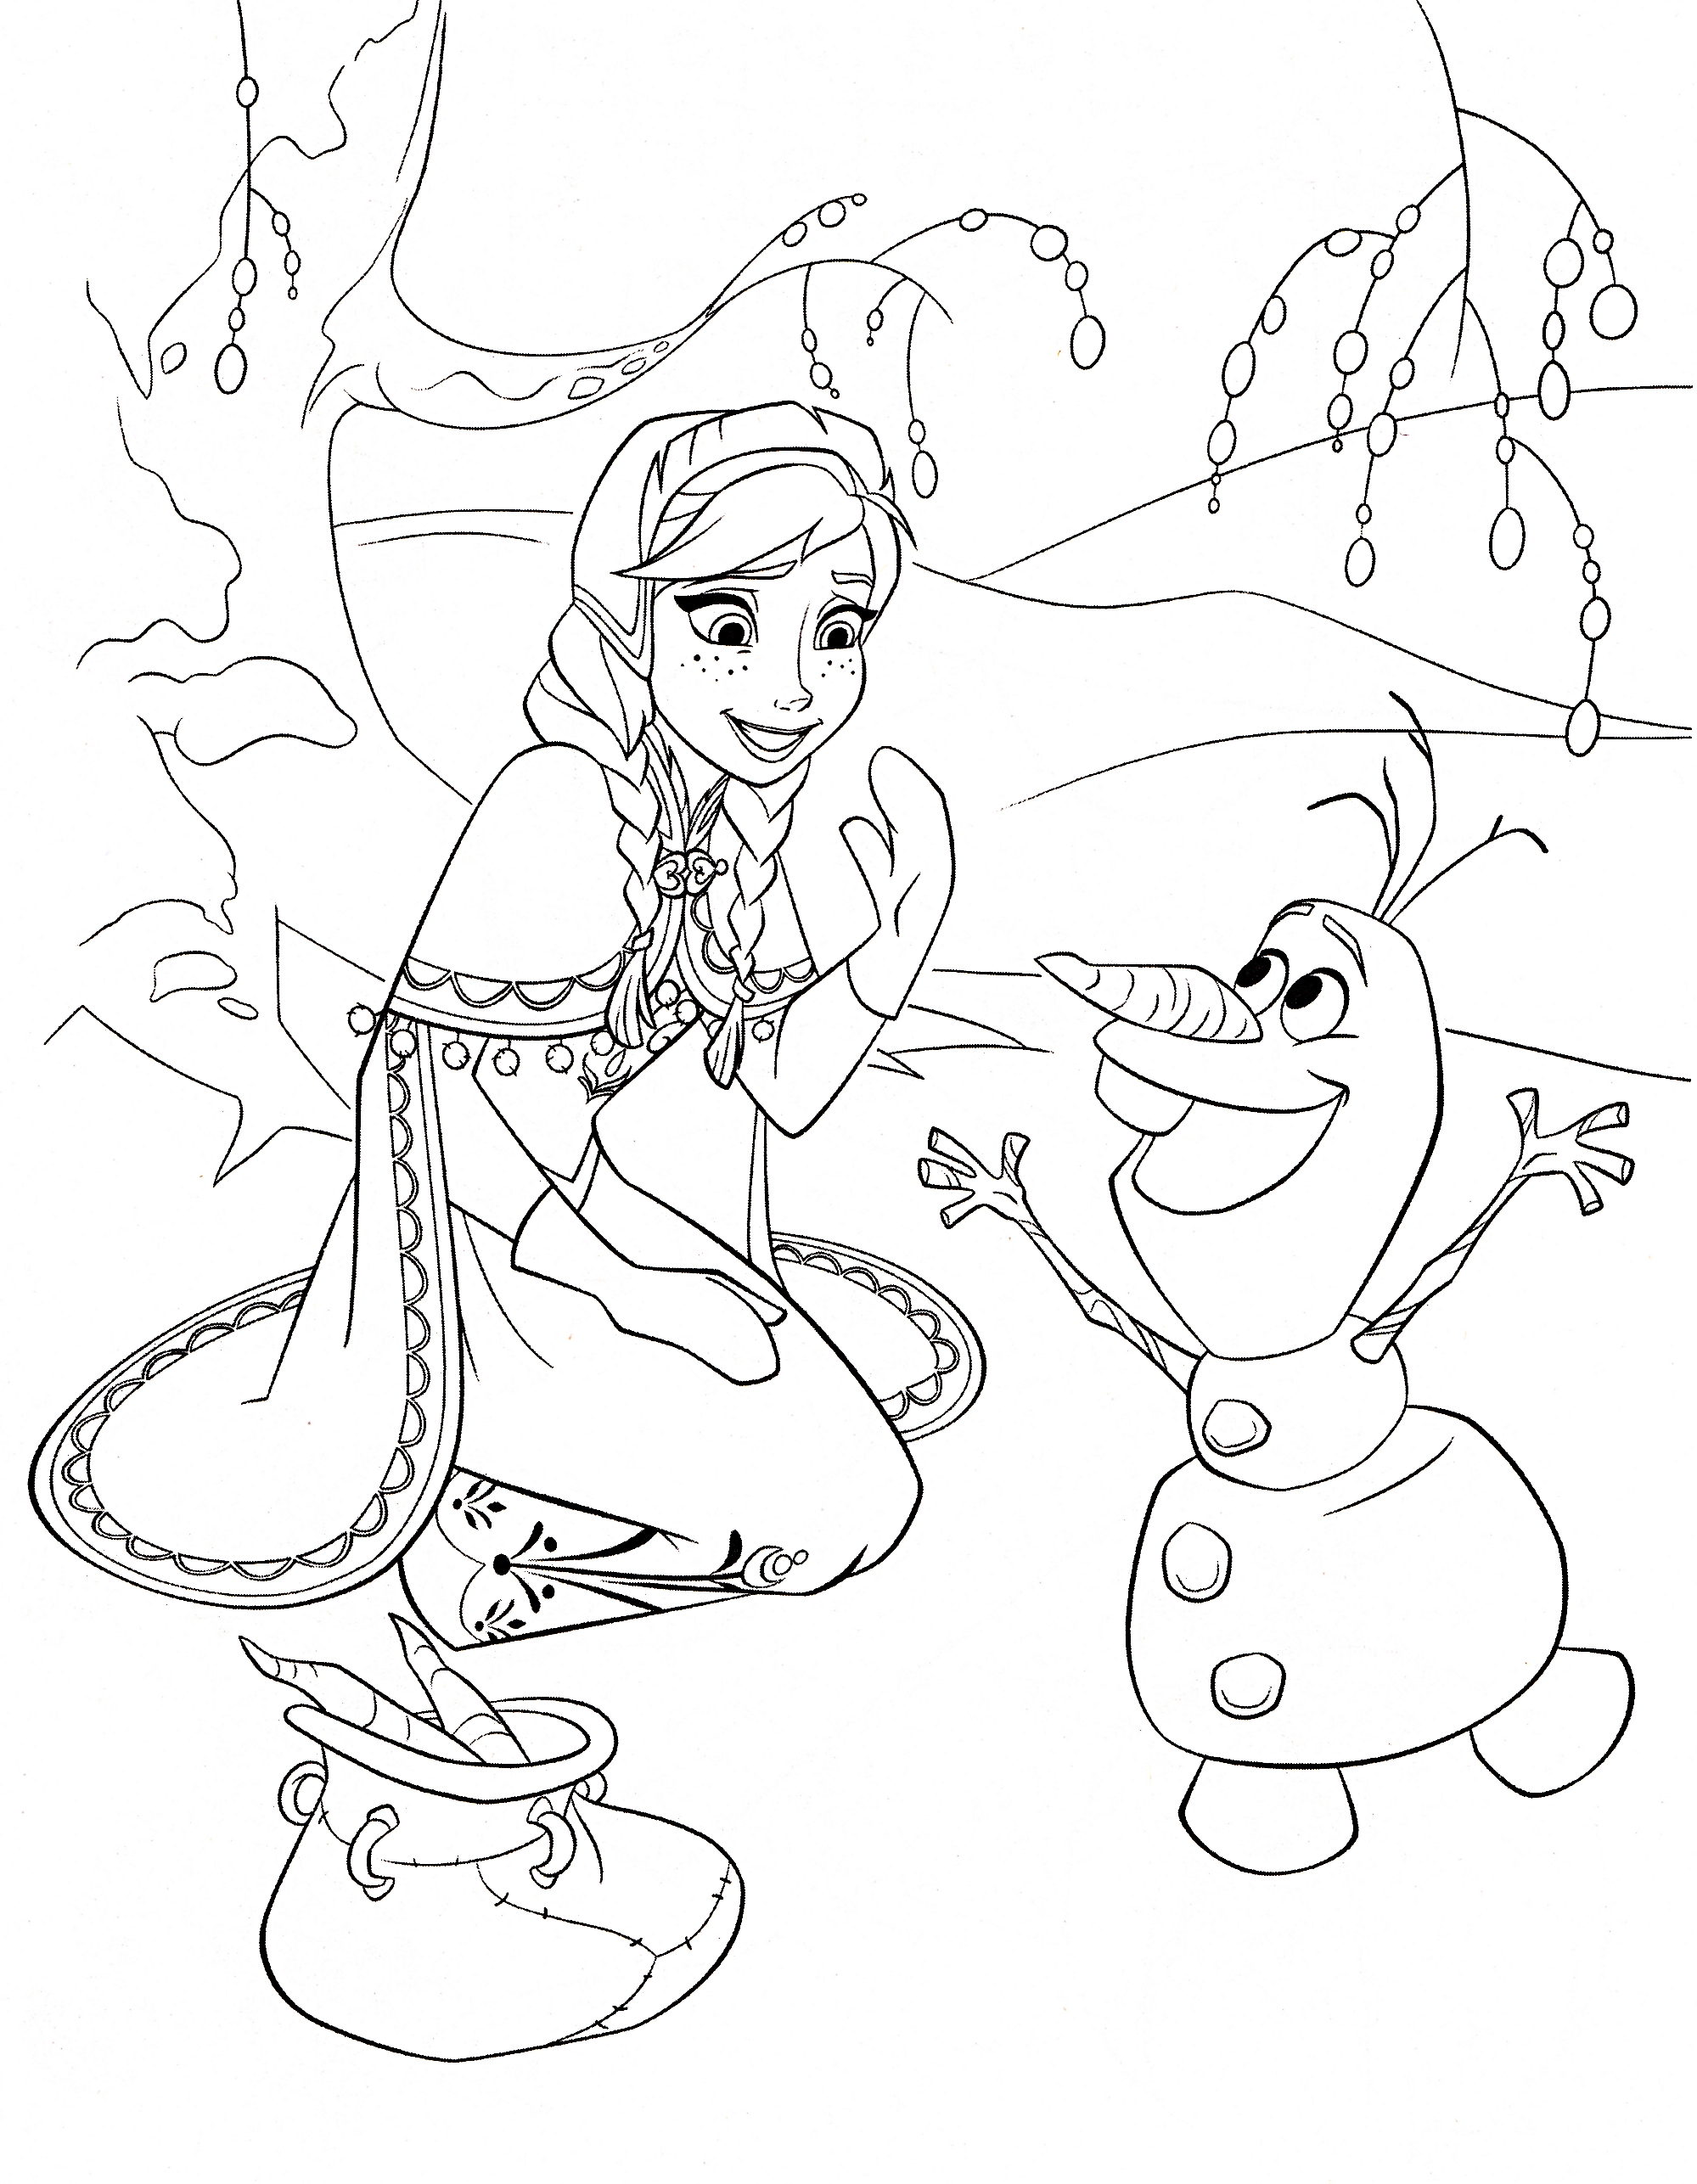 Free Disney Frozen Colouring Pictures To Print – Pusat Hobi